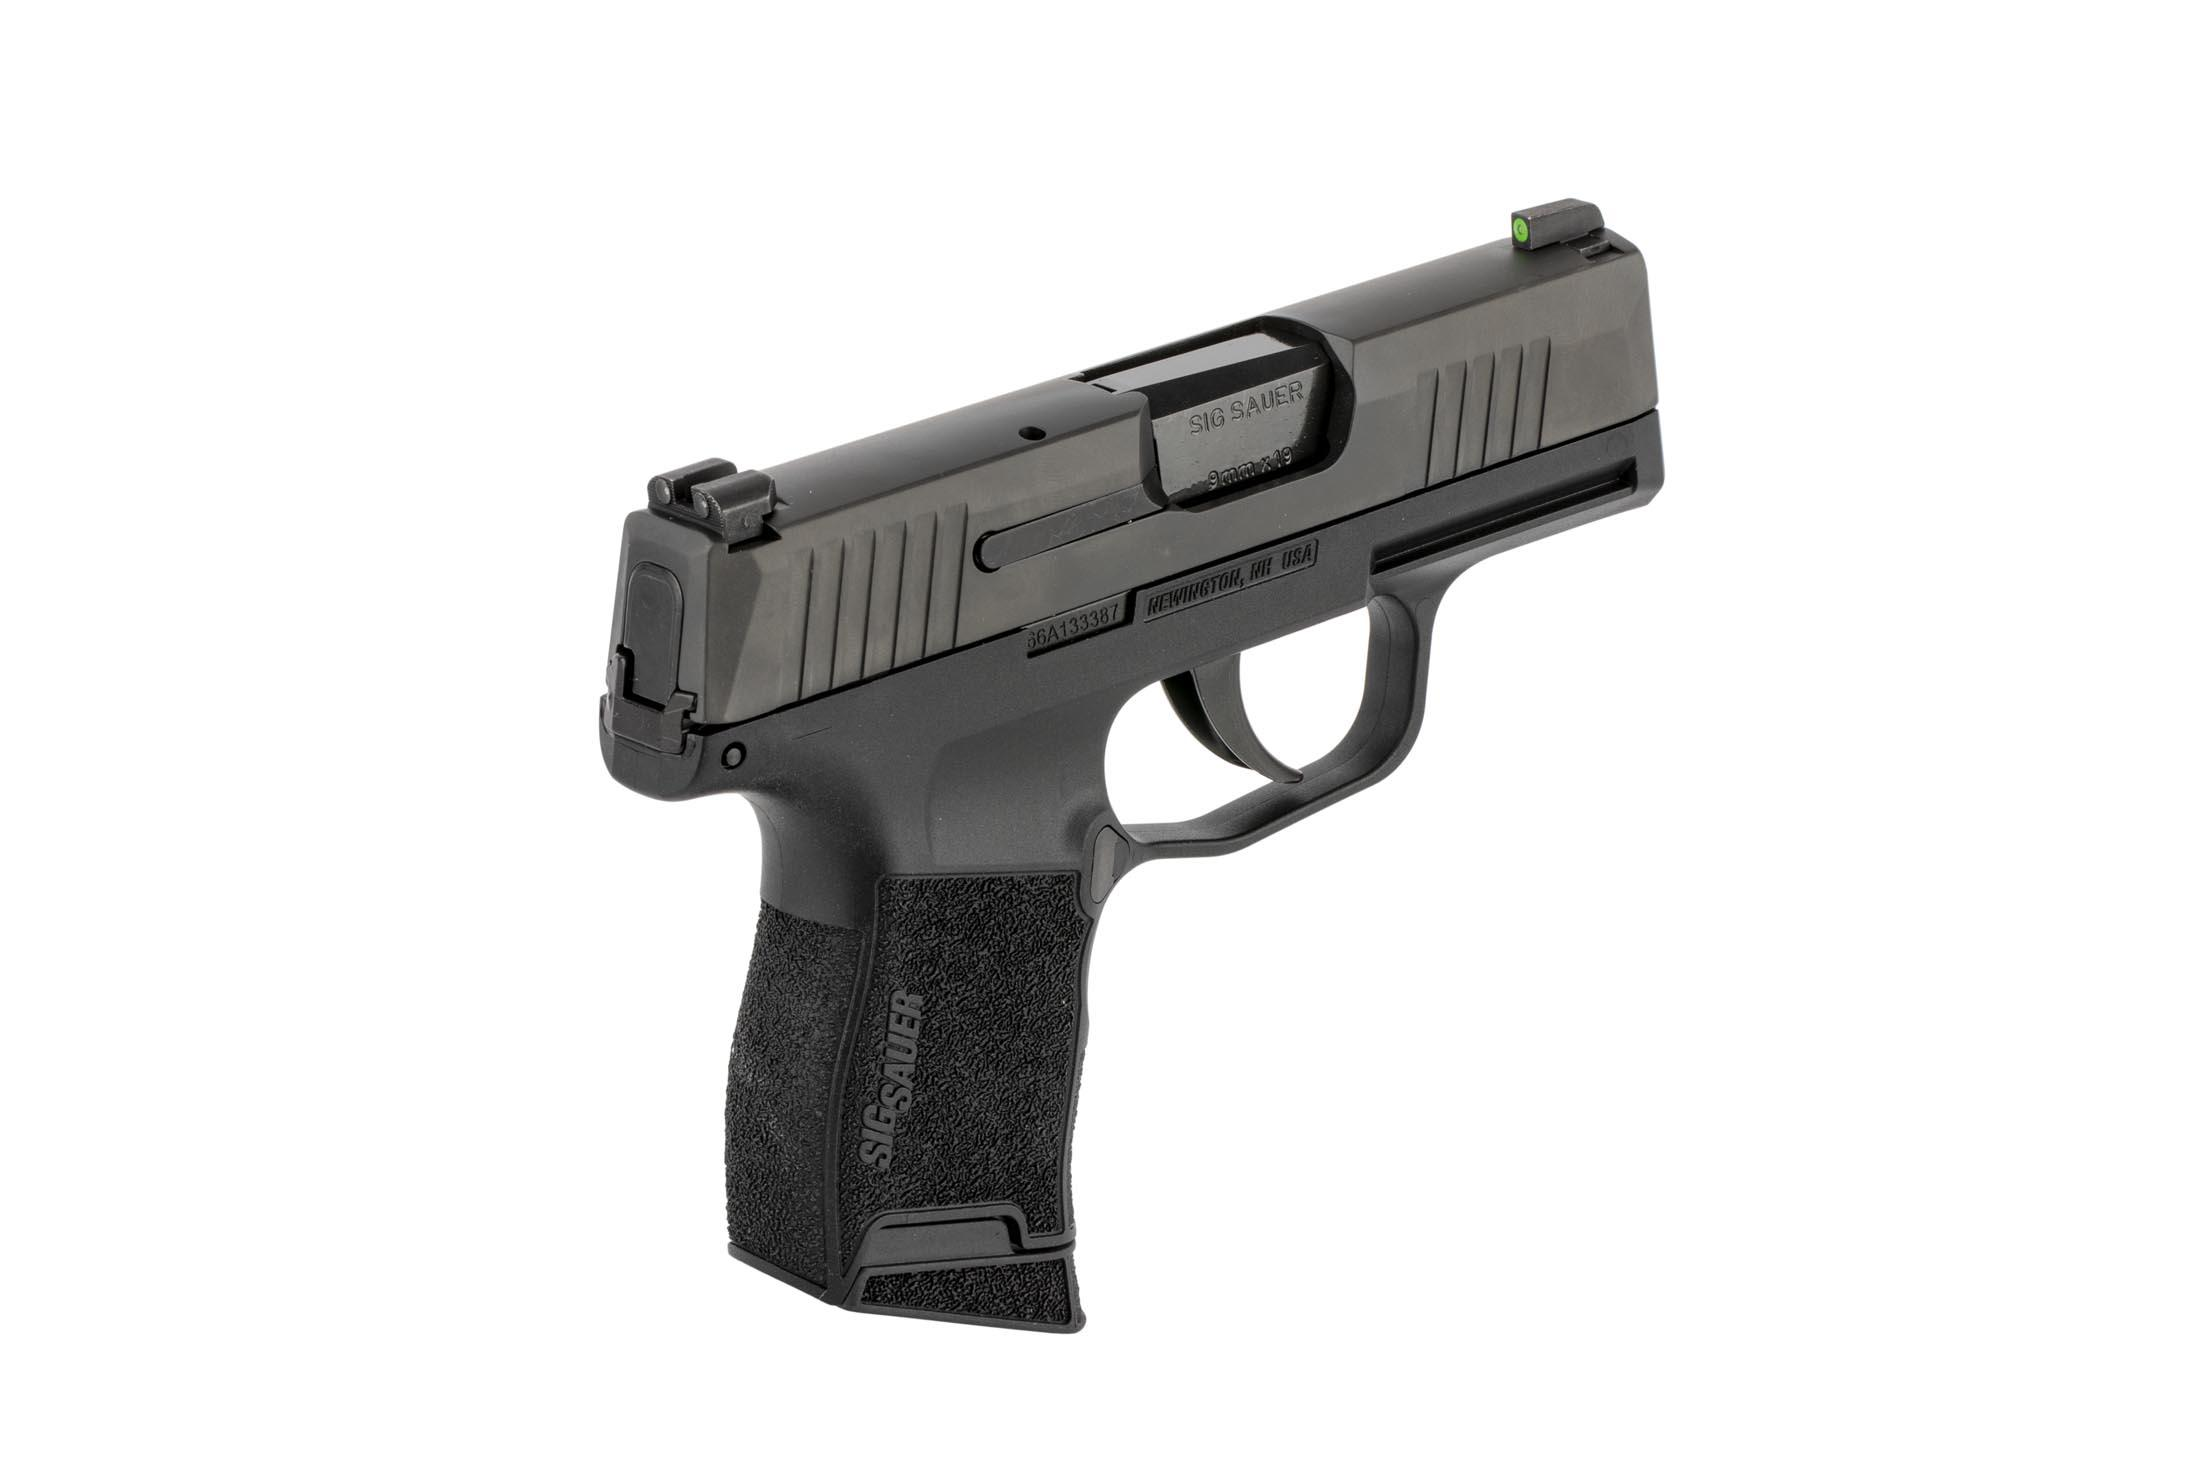 SIG Sauer P365 handgun is a slim concealed carry handgun with high-texture frame and high visibility sights.